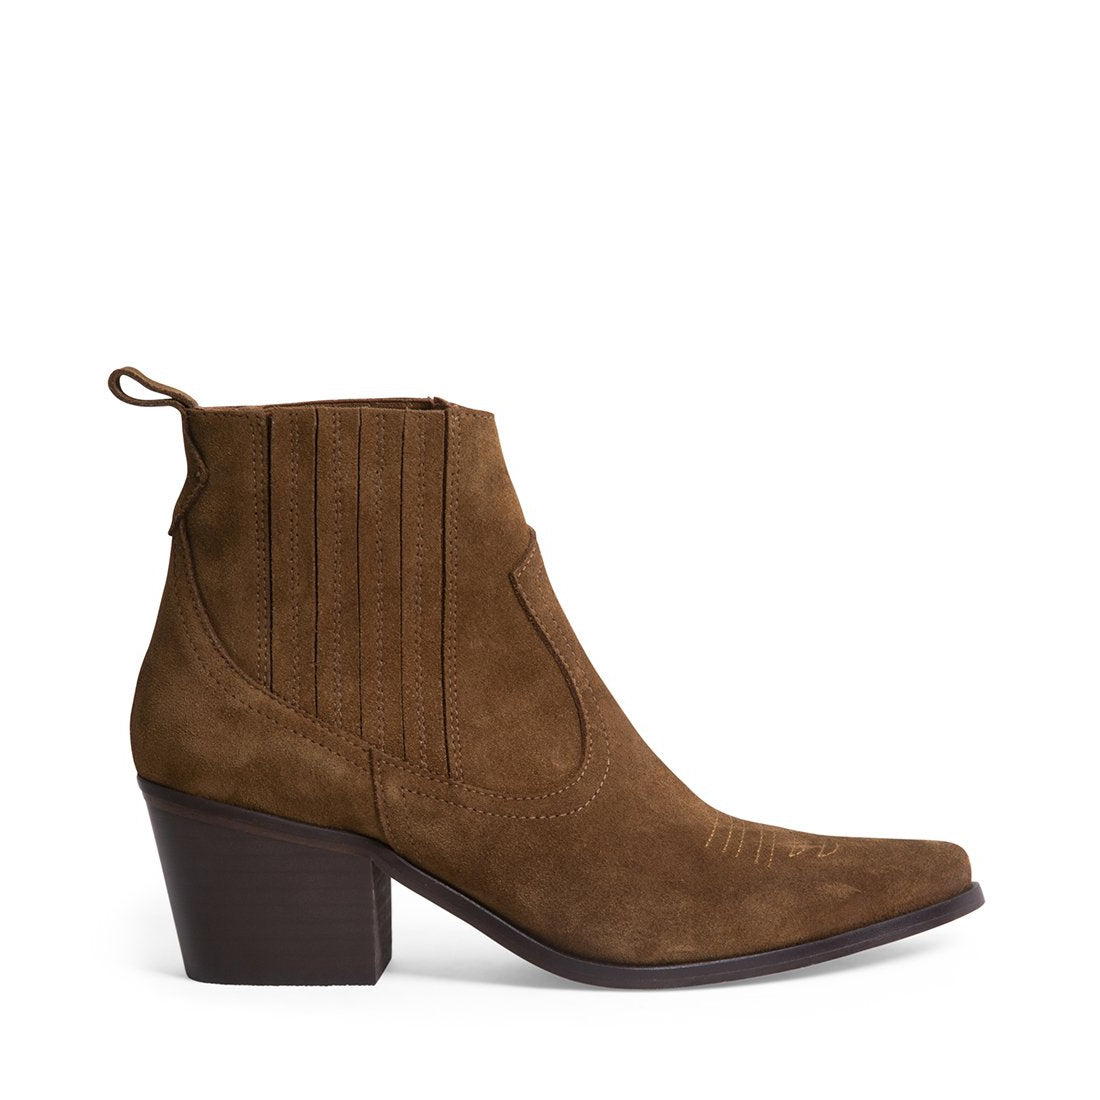 Montana Tan Suede by Steve Madden